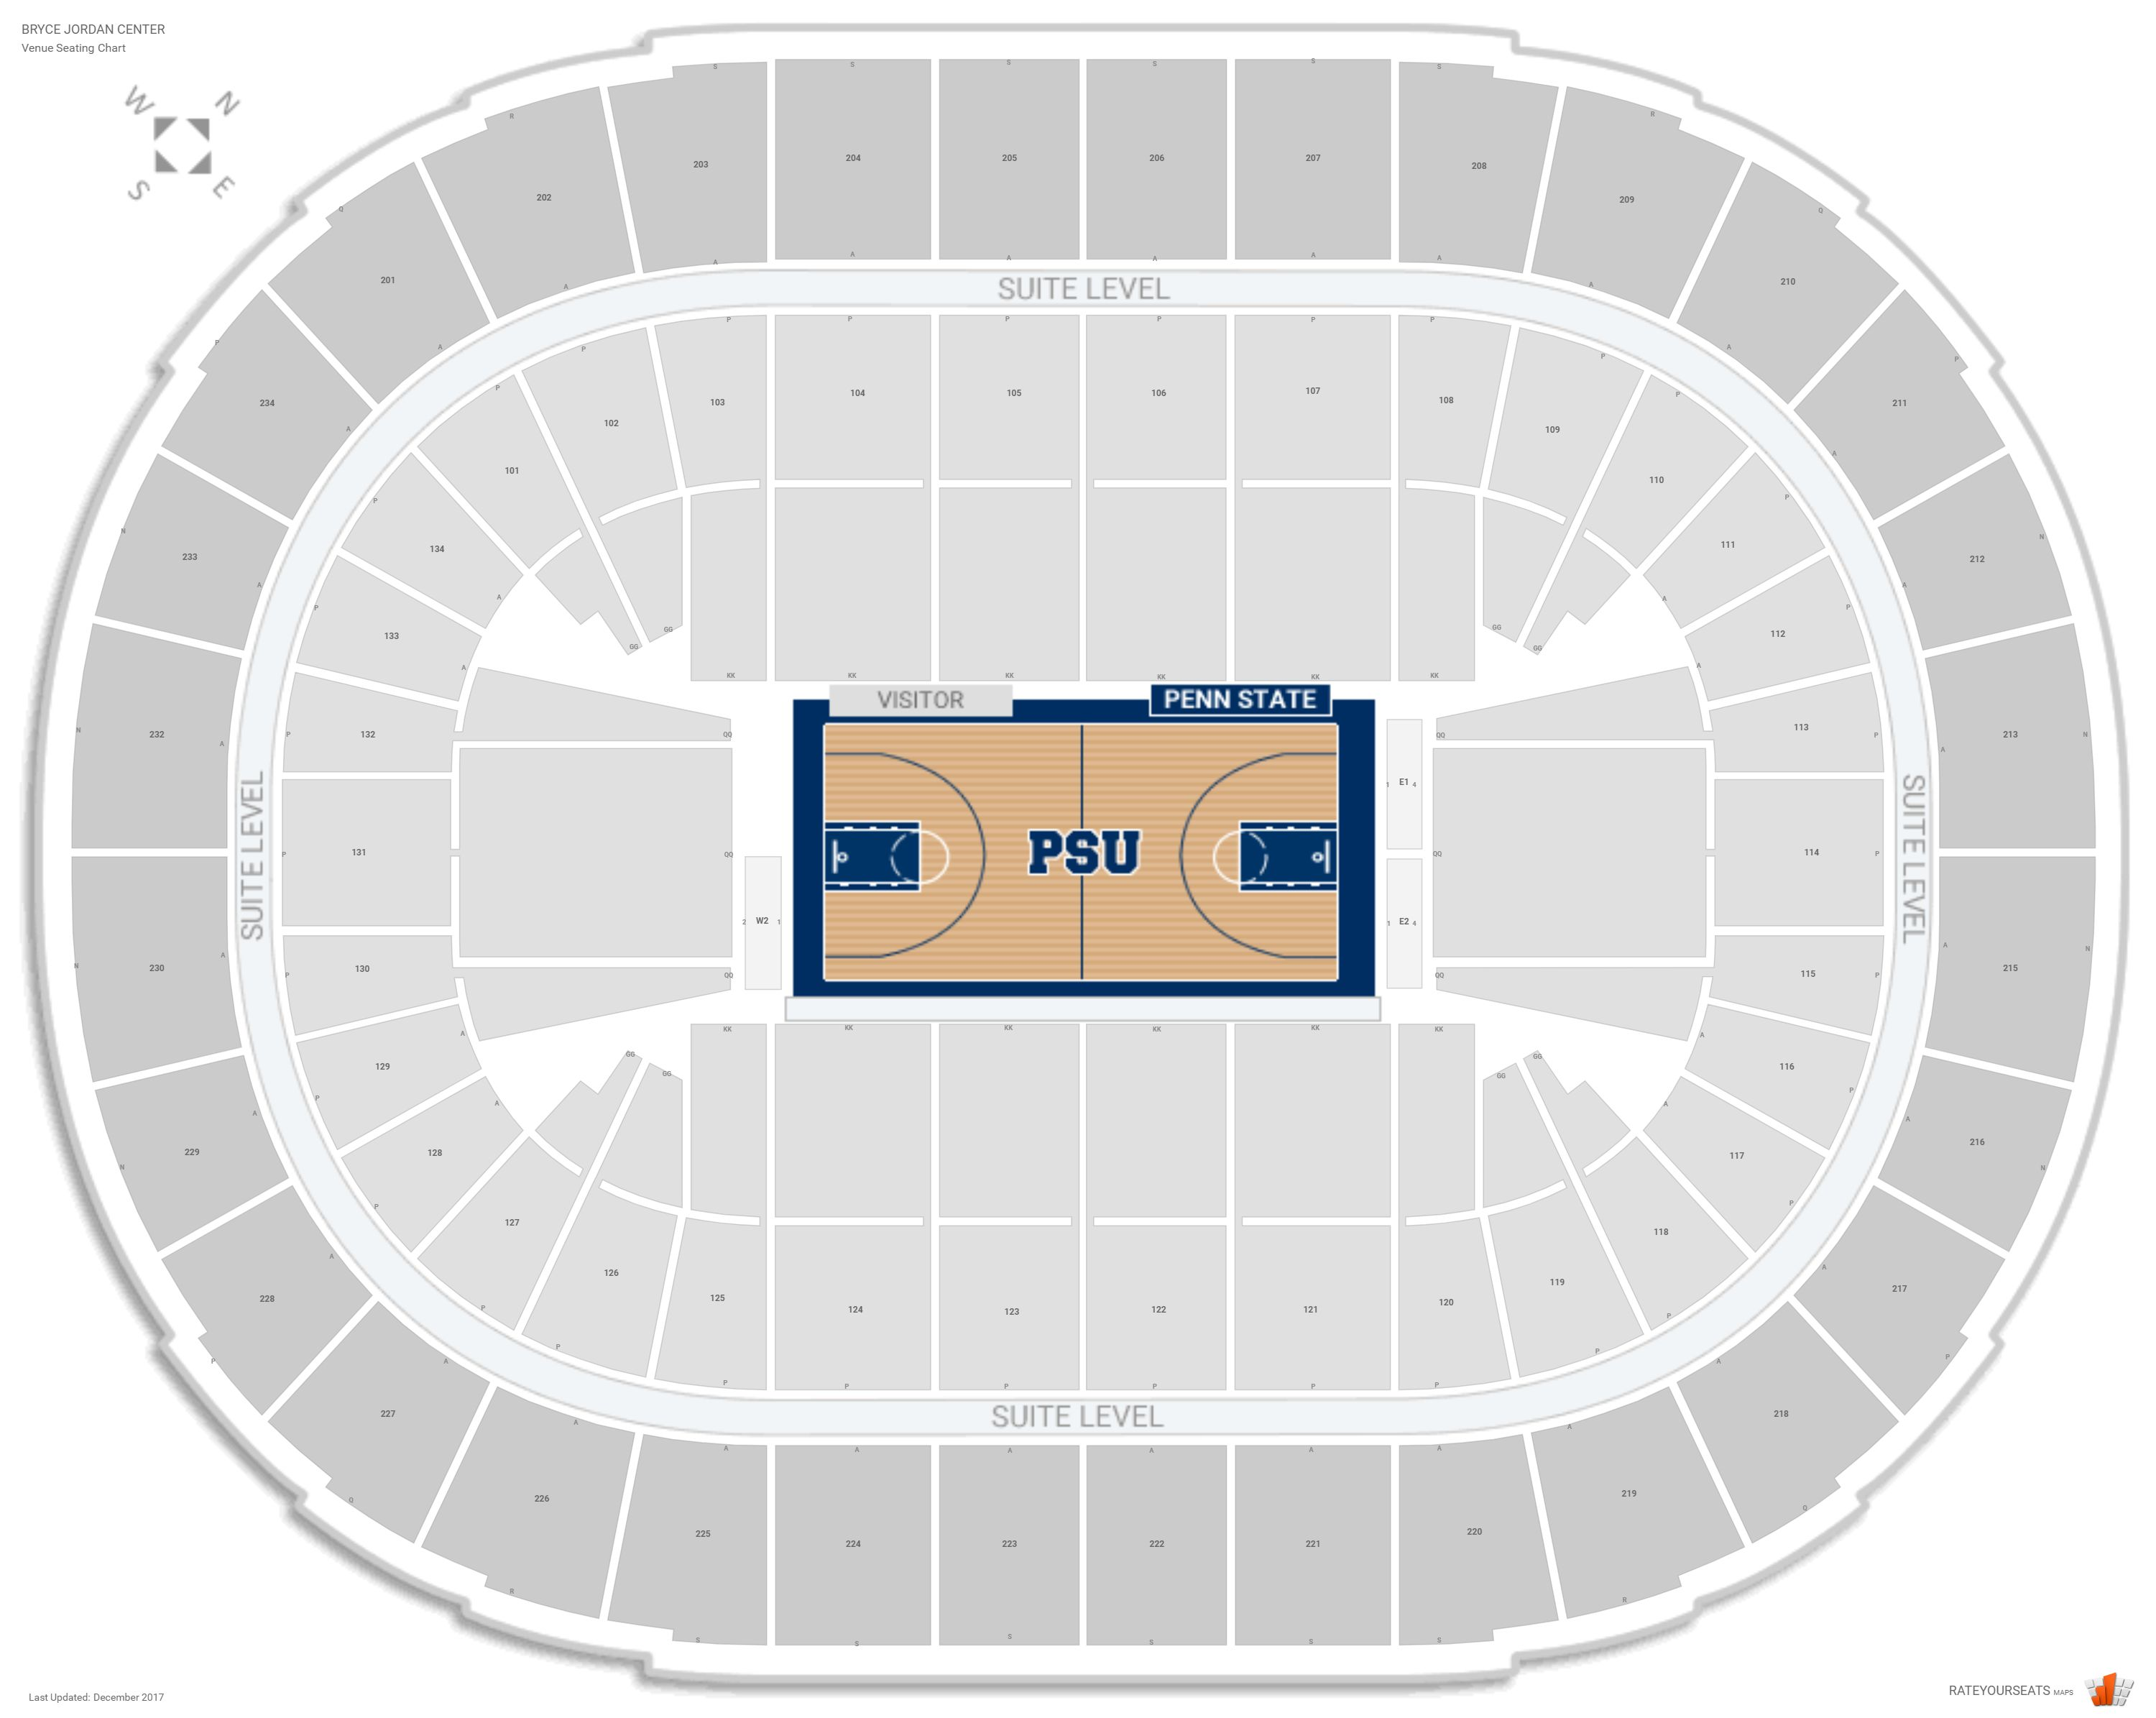 Bryce Jordan Center (Penn State) Seating Guide ... on map of arco arena, map of van andel arena, map of seven springs mountain resort, map of fitzgerald theater, map of verizon wireless arena, map of la sports arena, map of mgm grand garden arena, map of york fair, map of burton coliseum, map of germain arena, map of ppl park, map of john paul jones arena, map of bramlage coliseum, map of pinnacle bank arena, map of time warner cable arena, map of value city arena, map of blue cross arena, map of delaware state fair, map of matthew knight arena, map of first niagara pavilion,